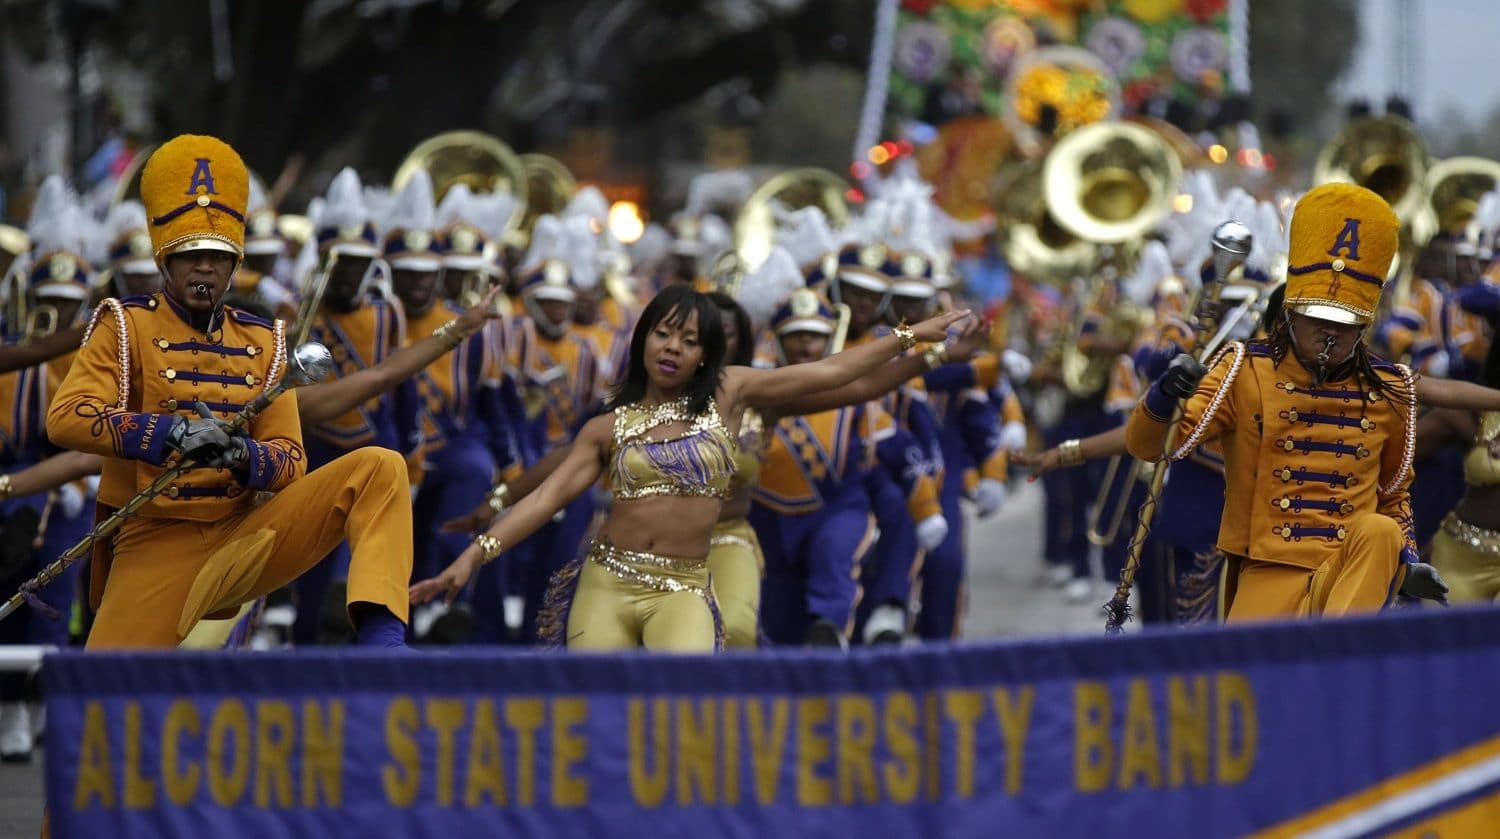 Members of the Alcorn State University Band march in the Krewe of Proteus Mardi Gras parade in New Orleans, Monday, Feb. 16, 2015. The day is known as Lundi Gras, the day before Mardi Gras. (AP Photo/Gerald Herbert)